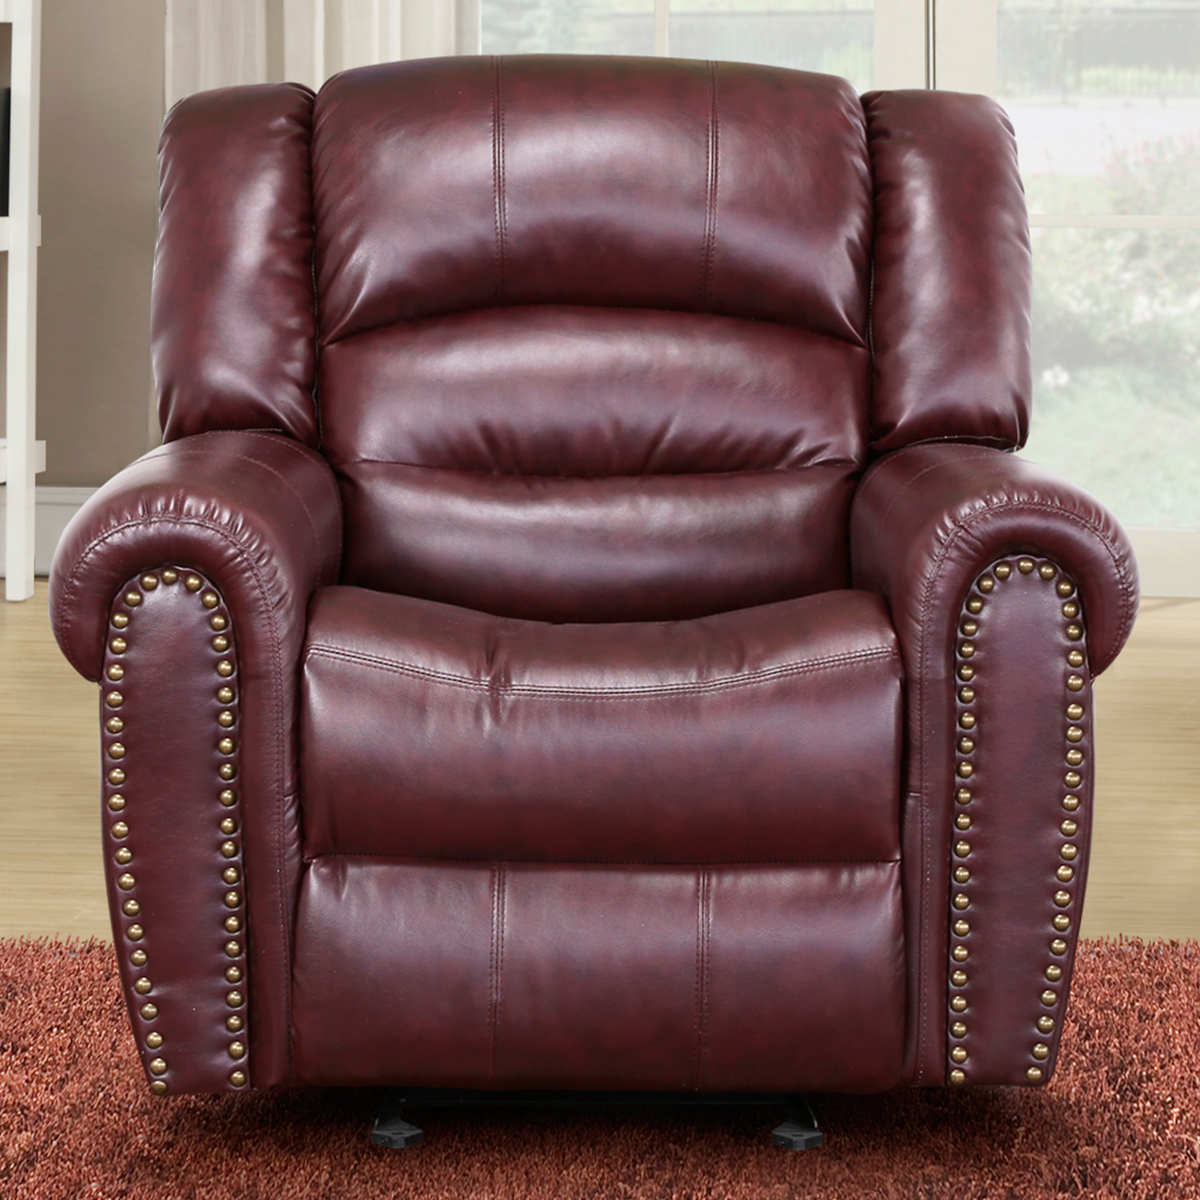 chelsea burgundy leather rocker recliner w nailhead detail - Leather Rocker Recliner